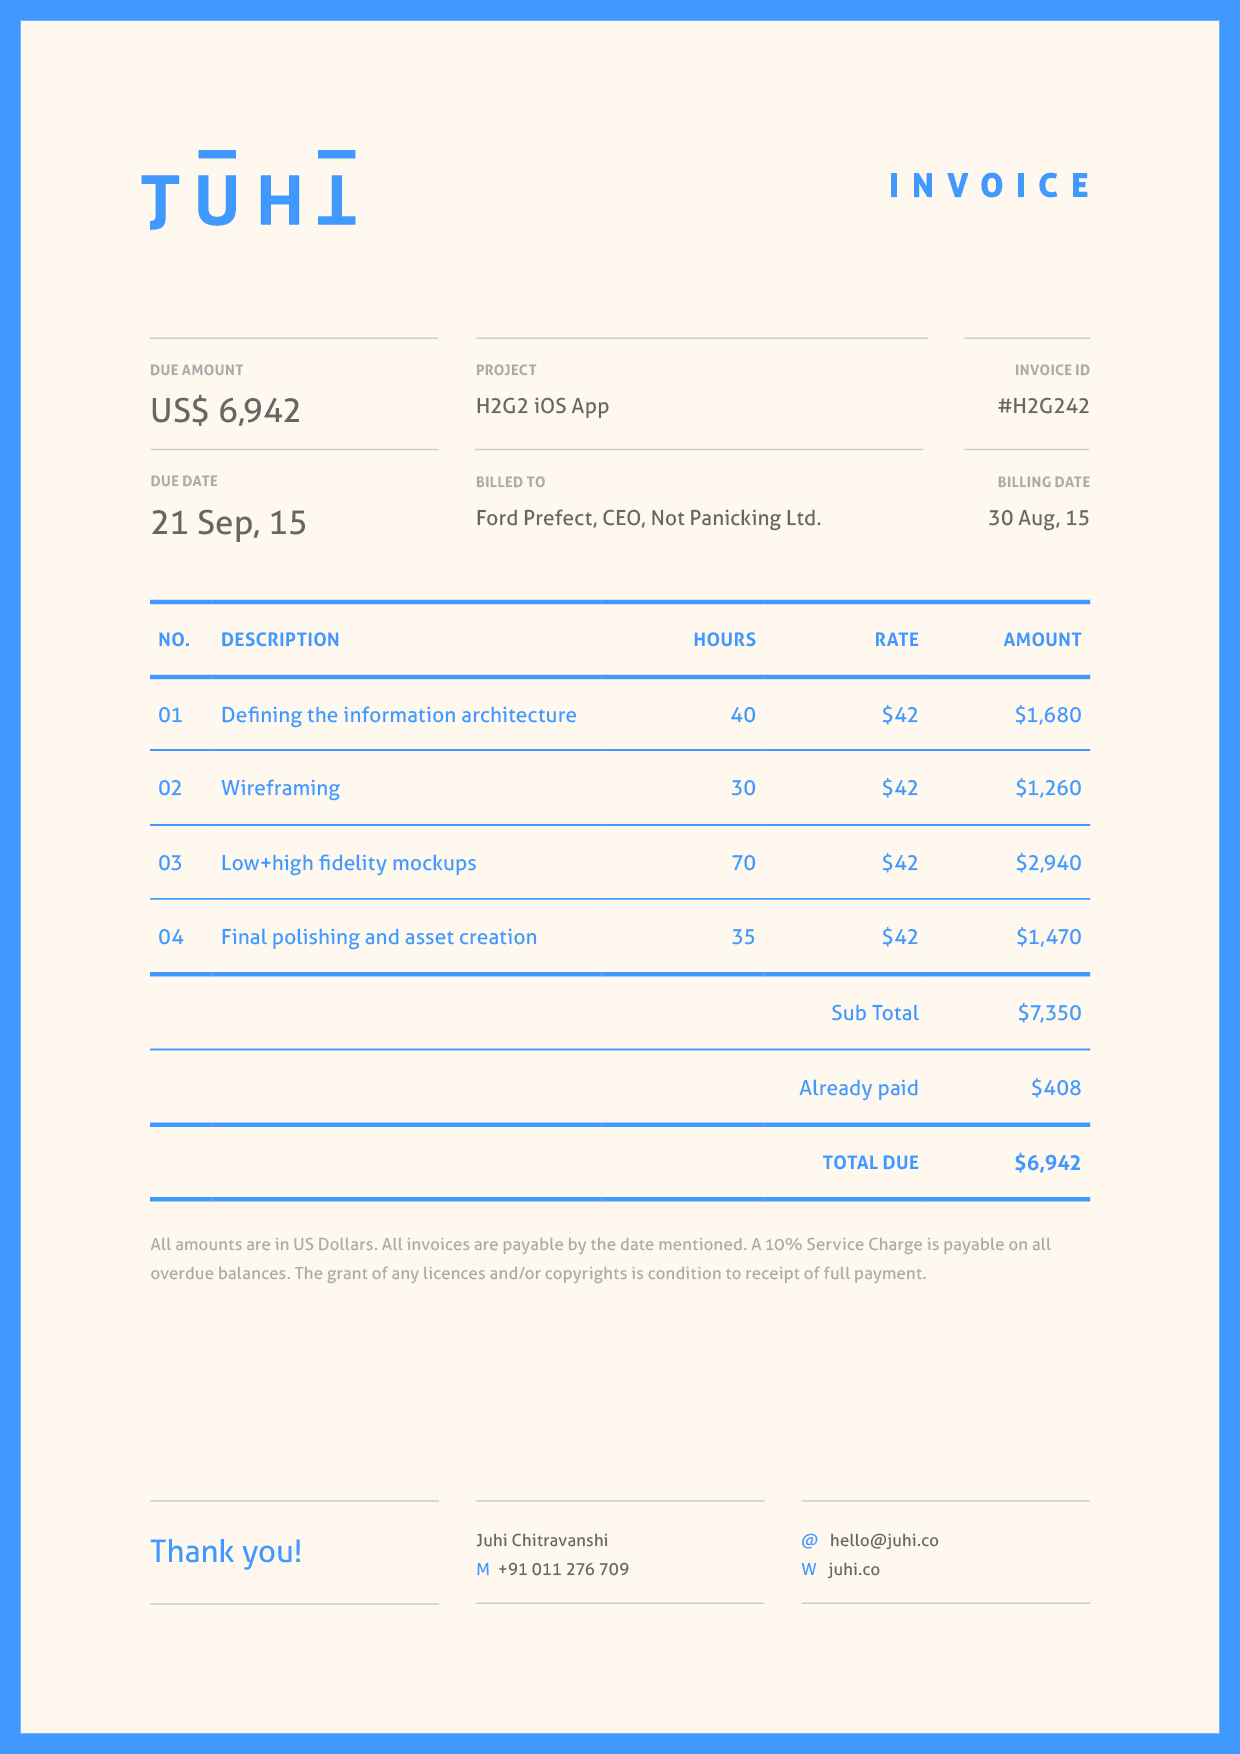 Shopdesignsus  Winsome Dont Hold Back On Your Invoice  Inspiring Designs  With Interesting Invoice By Juhi Chitravanshi Follow With Easy On The Eye Journal Entry For Invoice Processing Also How To Receive Invoice On Paypal In Addition Ford Escape Invoice And Templates For Billing Invoice As Well As Open Invoice Adp Login Additionally How To Send An Invoice For Freelance Work From Inspirationfeedcom With Shopdesignsus  Interesting Dont Hold Back On Your Invoice  Inspiring Designs  With Easy On The Eye Invoice By Juhi Chitravanshi Follow And Winsome Journal Entry For Invoice Processing Also How To Receive Invoice On Paypal In Addition Ford Escape Invoice From Inspirationfeedcom